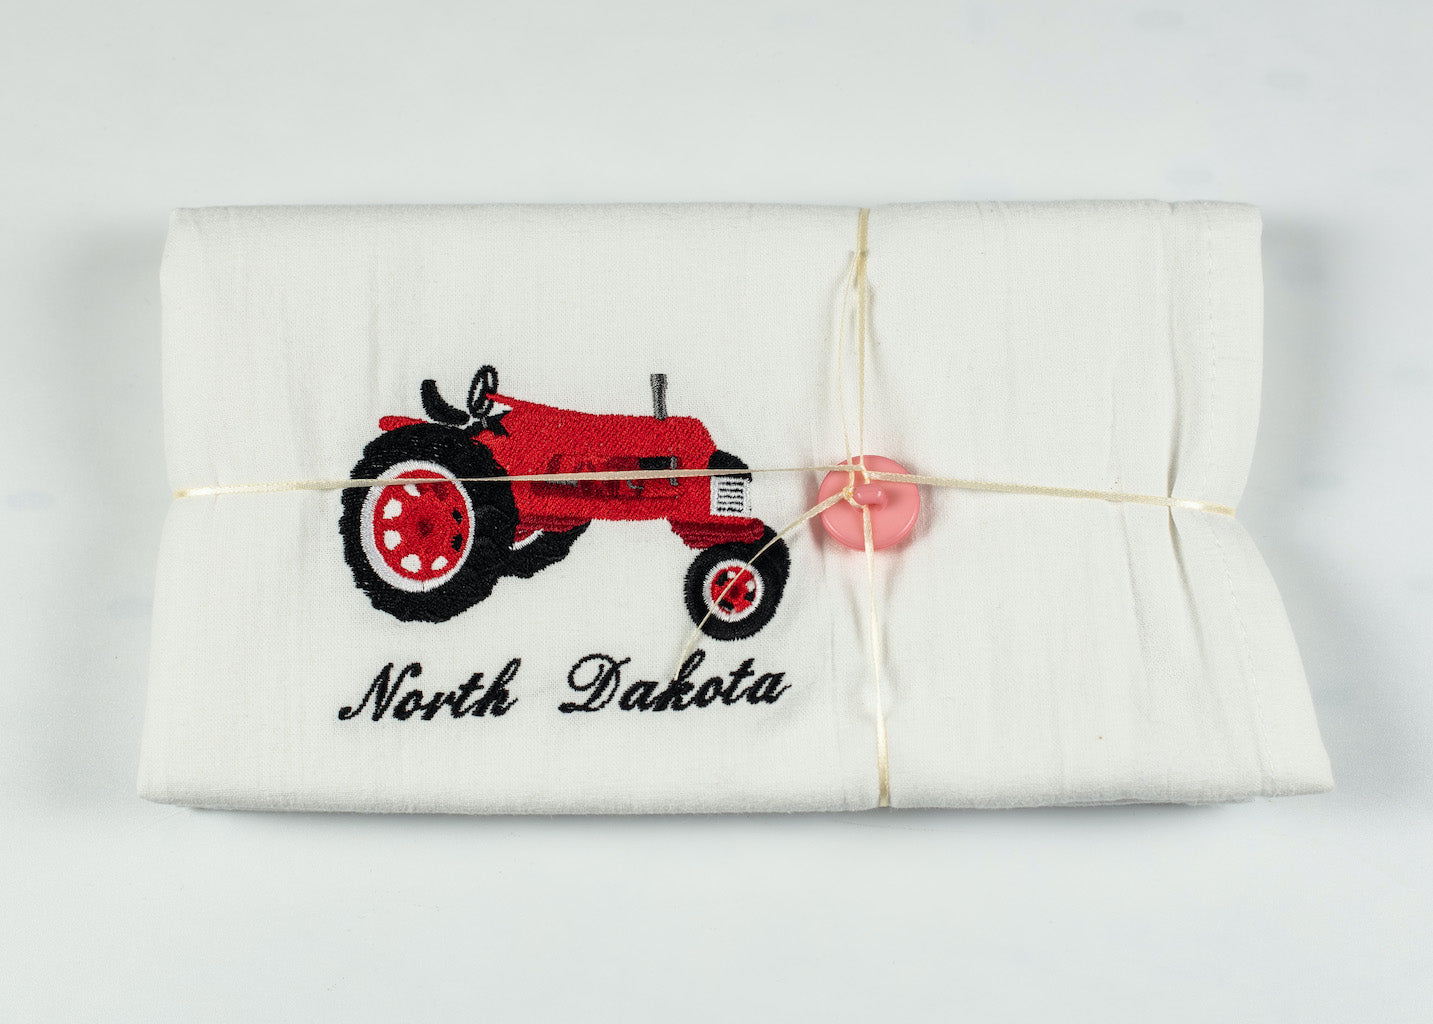 "NORTH DAKOTA EMBROIDERED RED TRACTOR FLOURSACK TOWEL 32"" X 36"" MADE IN ST. BONIFACIUS MN"